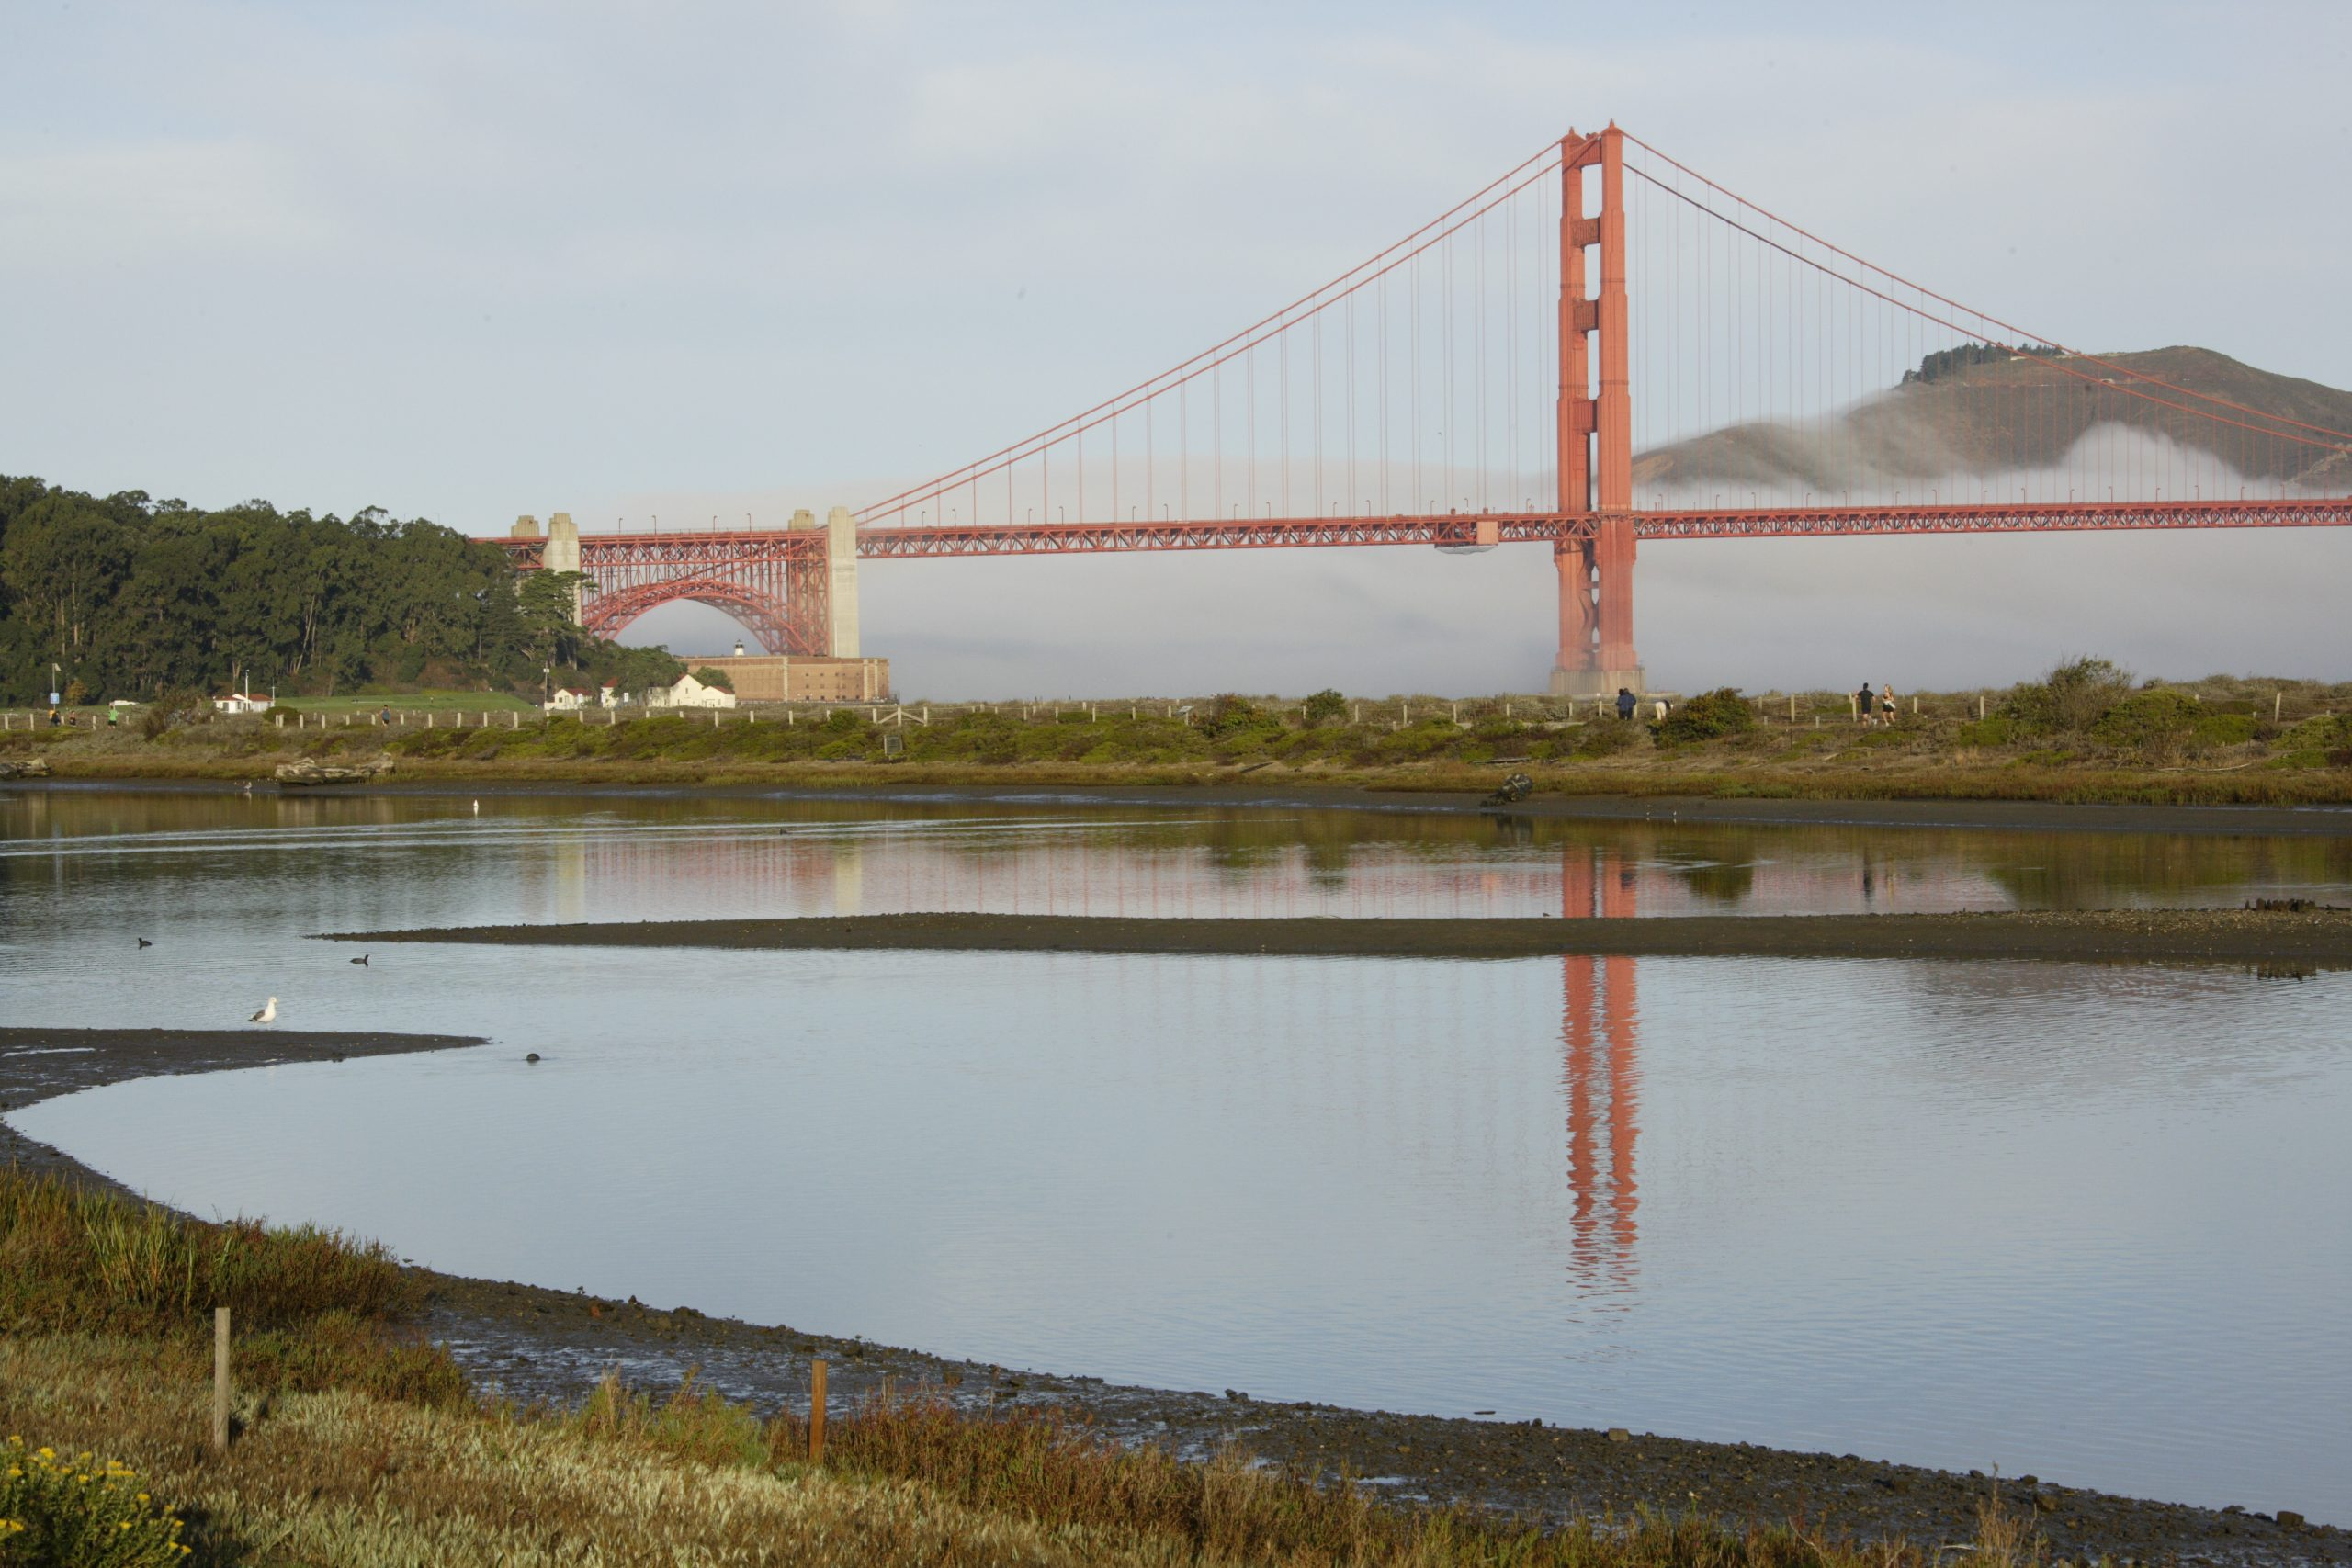 Image of Crissy Field with Golden Gate Bridge in the distance